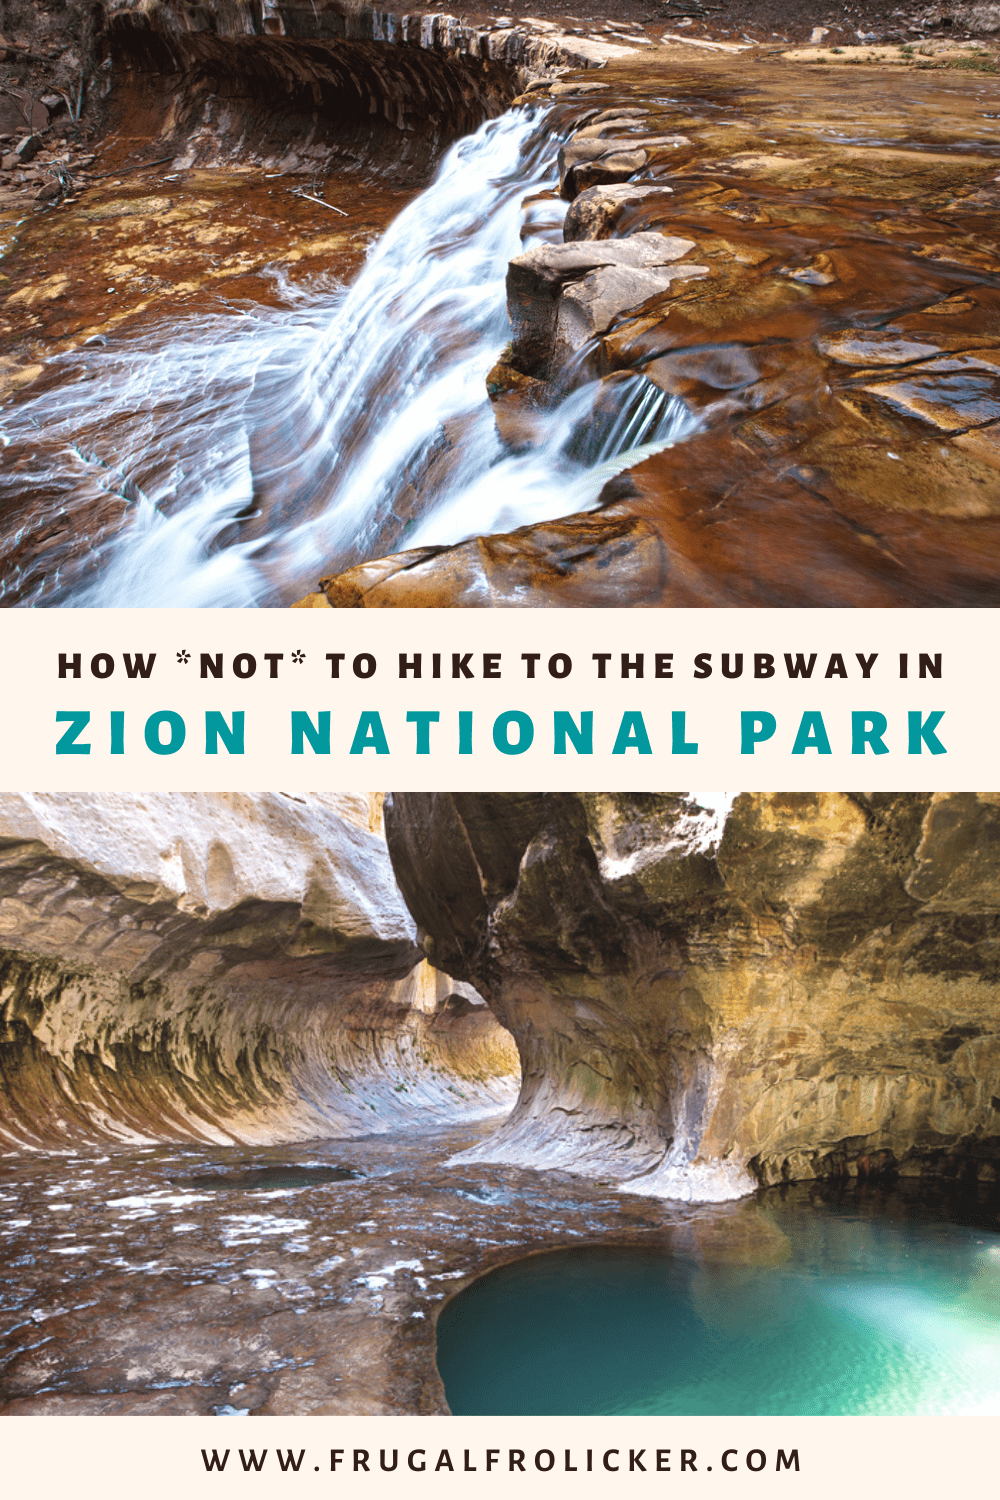 How NOT To Hike The Subway Trail in Zion National Park